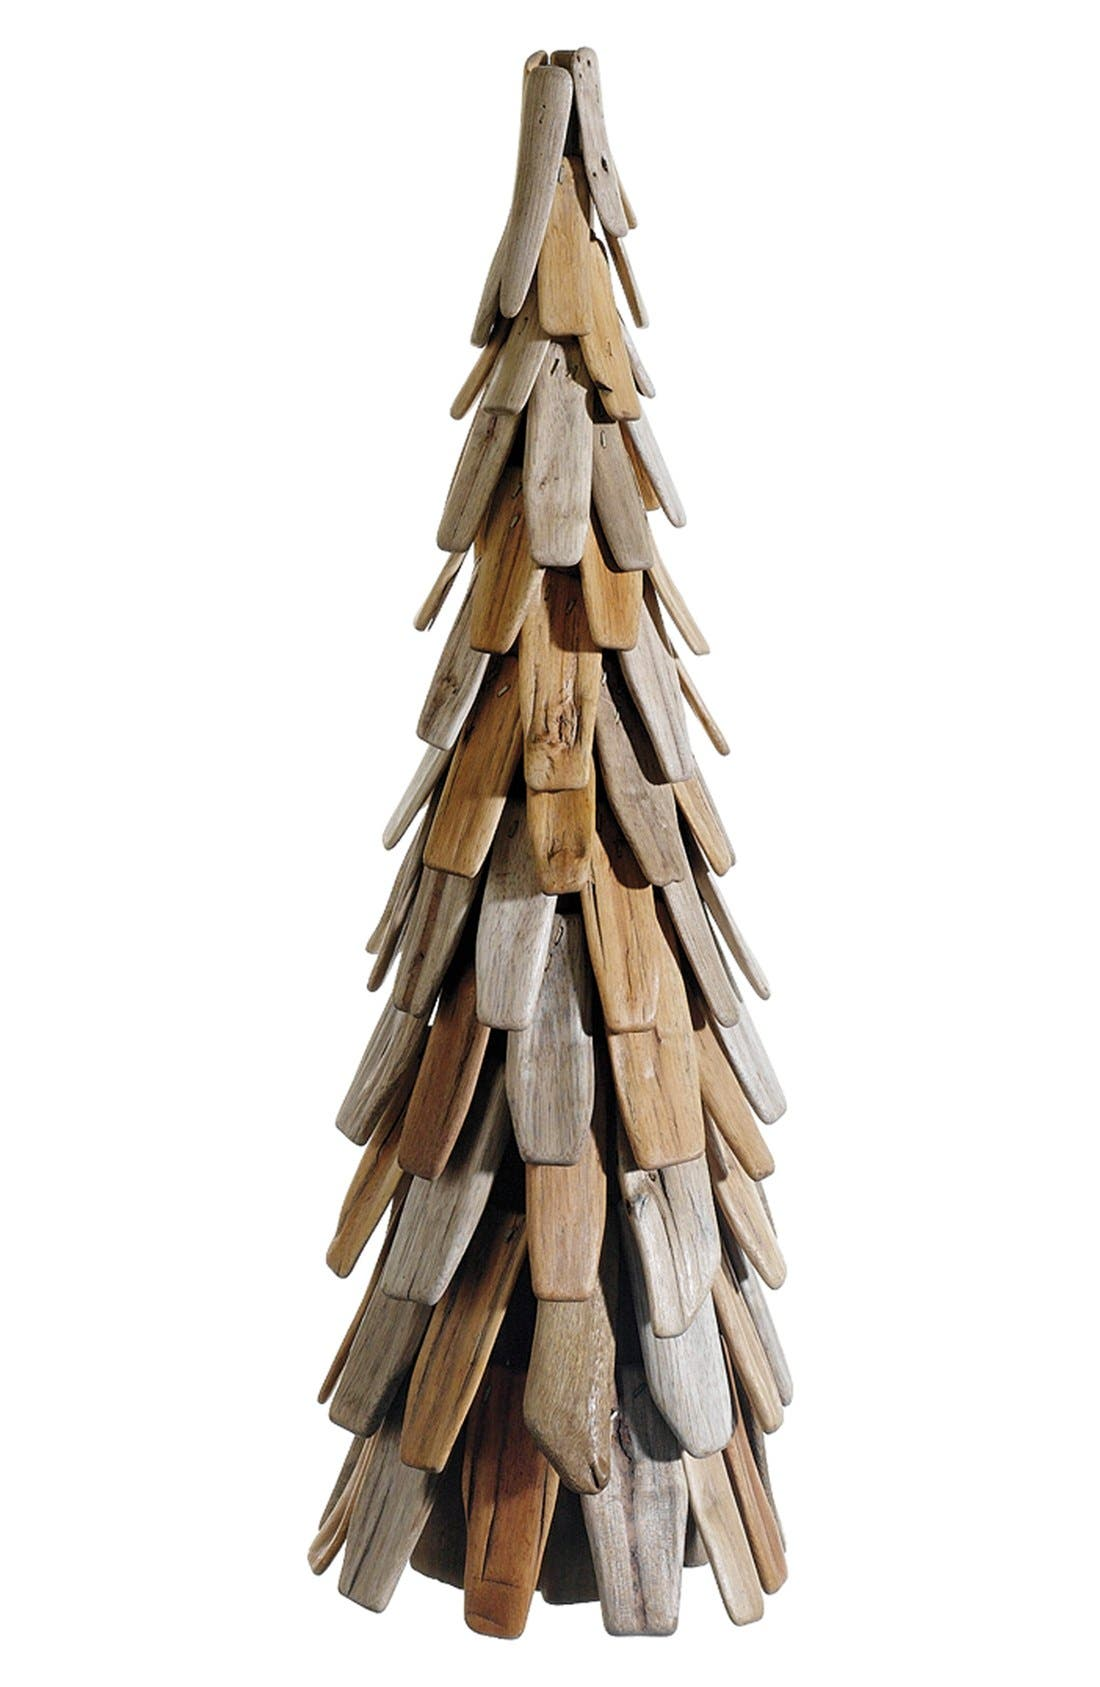 Main Image - ALLSTATE 'Driftwood' Standing Tree Decoration, Large